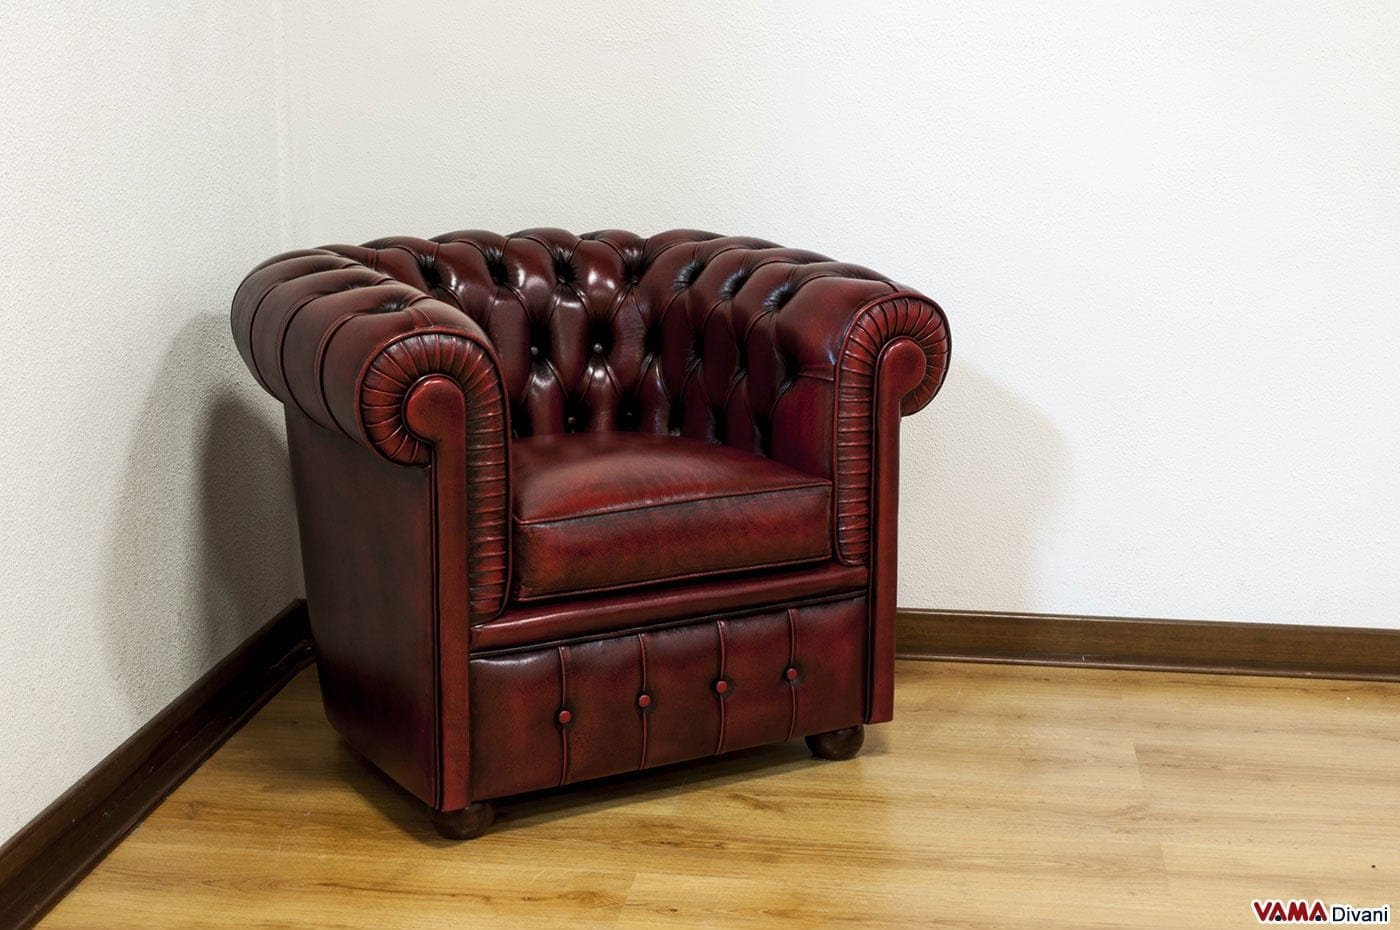 Poltrona Chesterfield di Piccole Dimensioni in Pelle Bordeaux